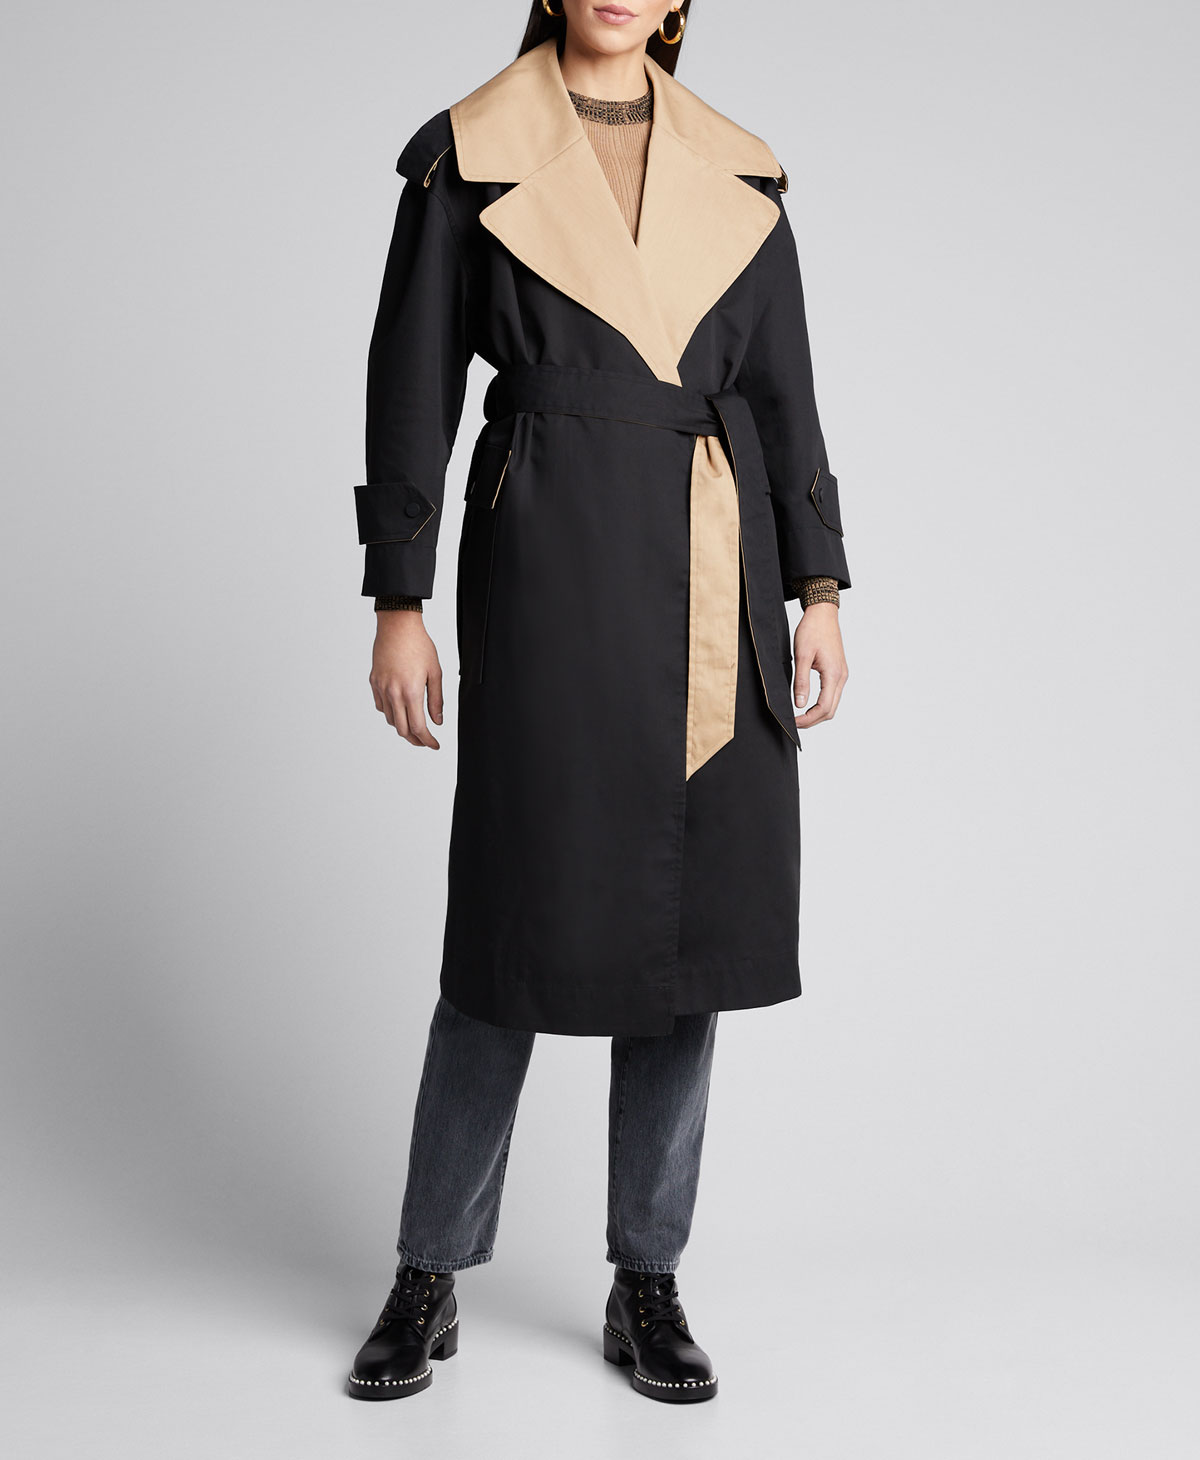 Ganni Coats TWO-TONE COTTON BELTED TRENCH COAT